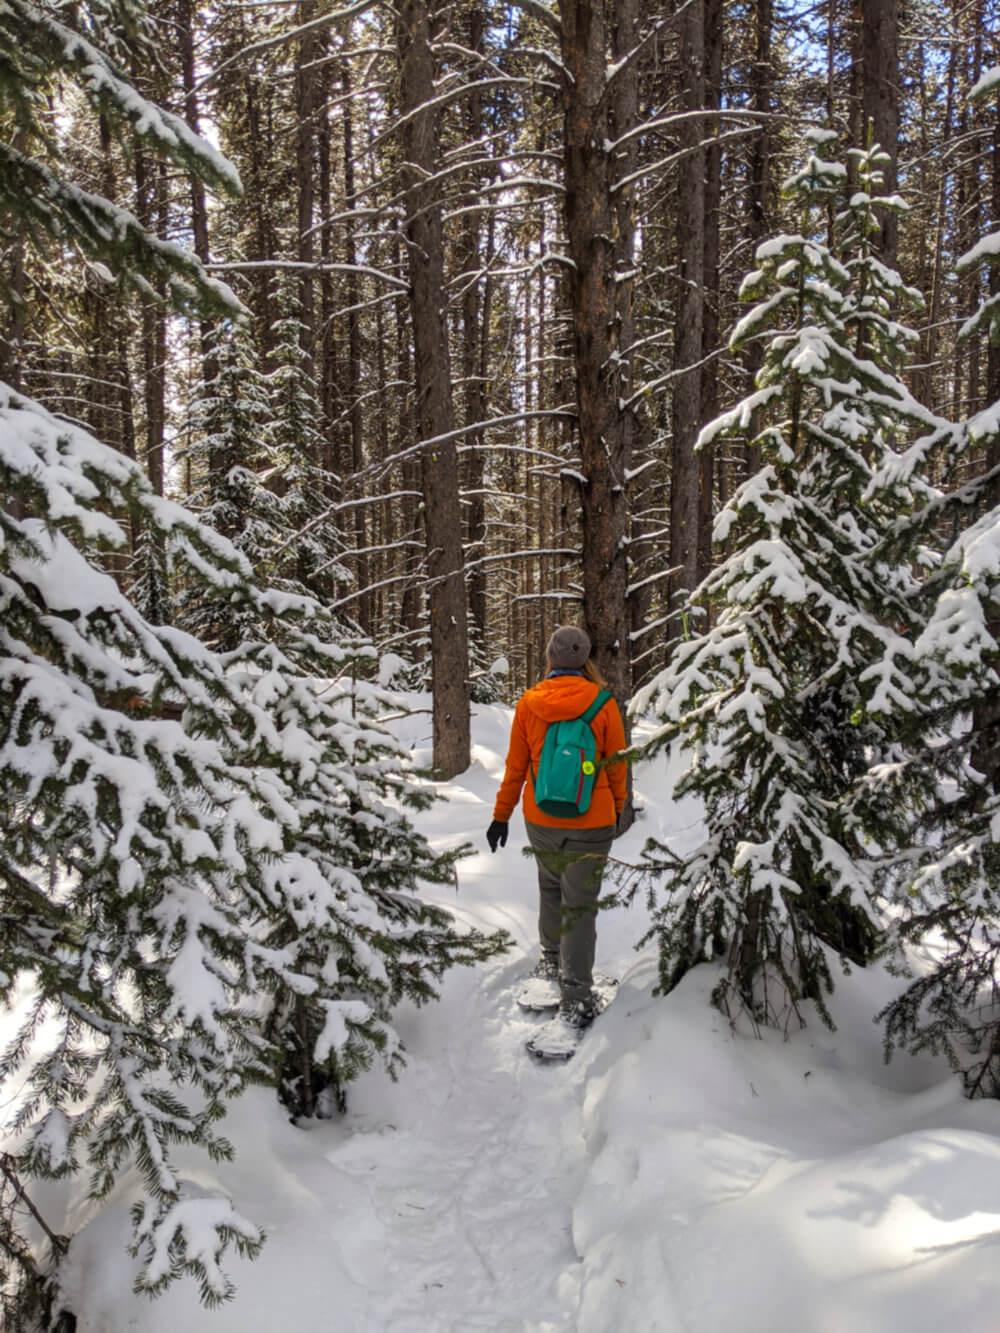 Gemma walking through snowy forest in orange jacket using snowshoes